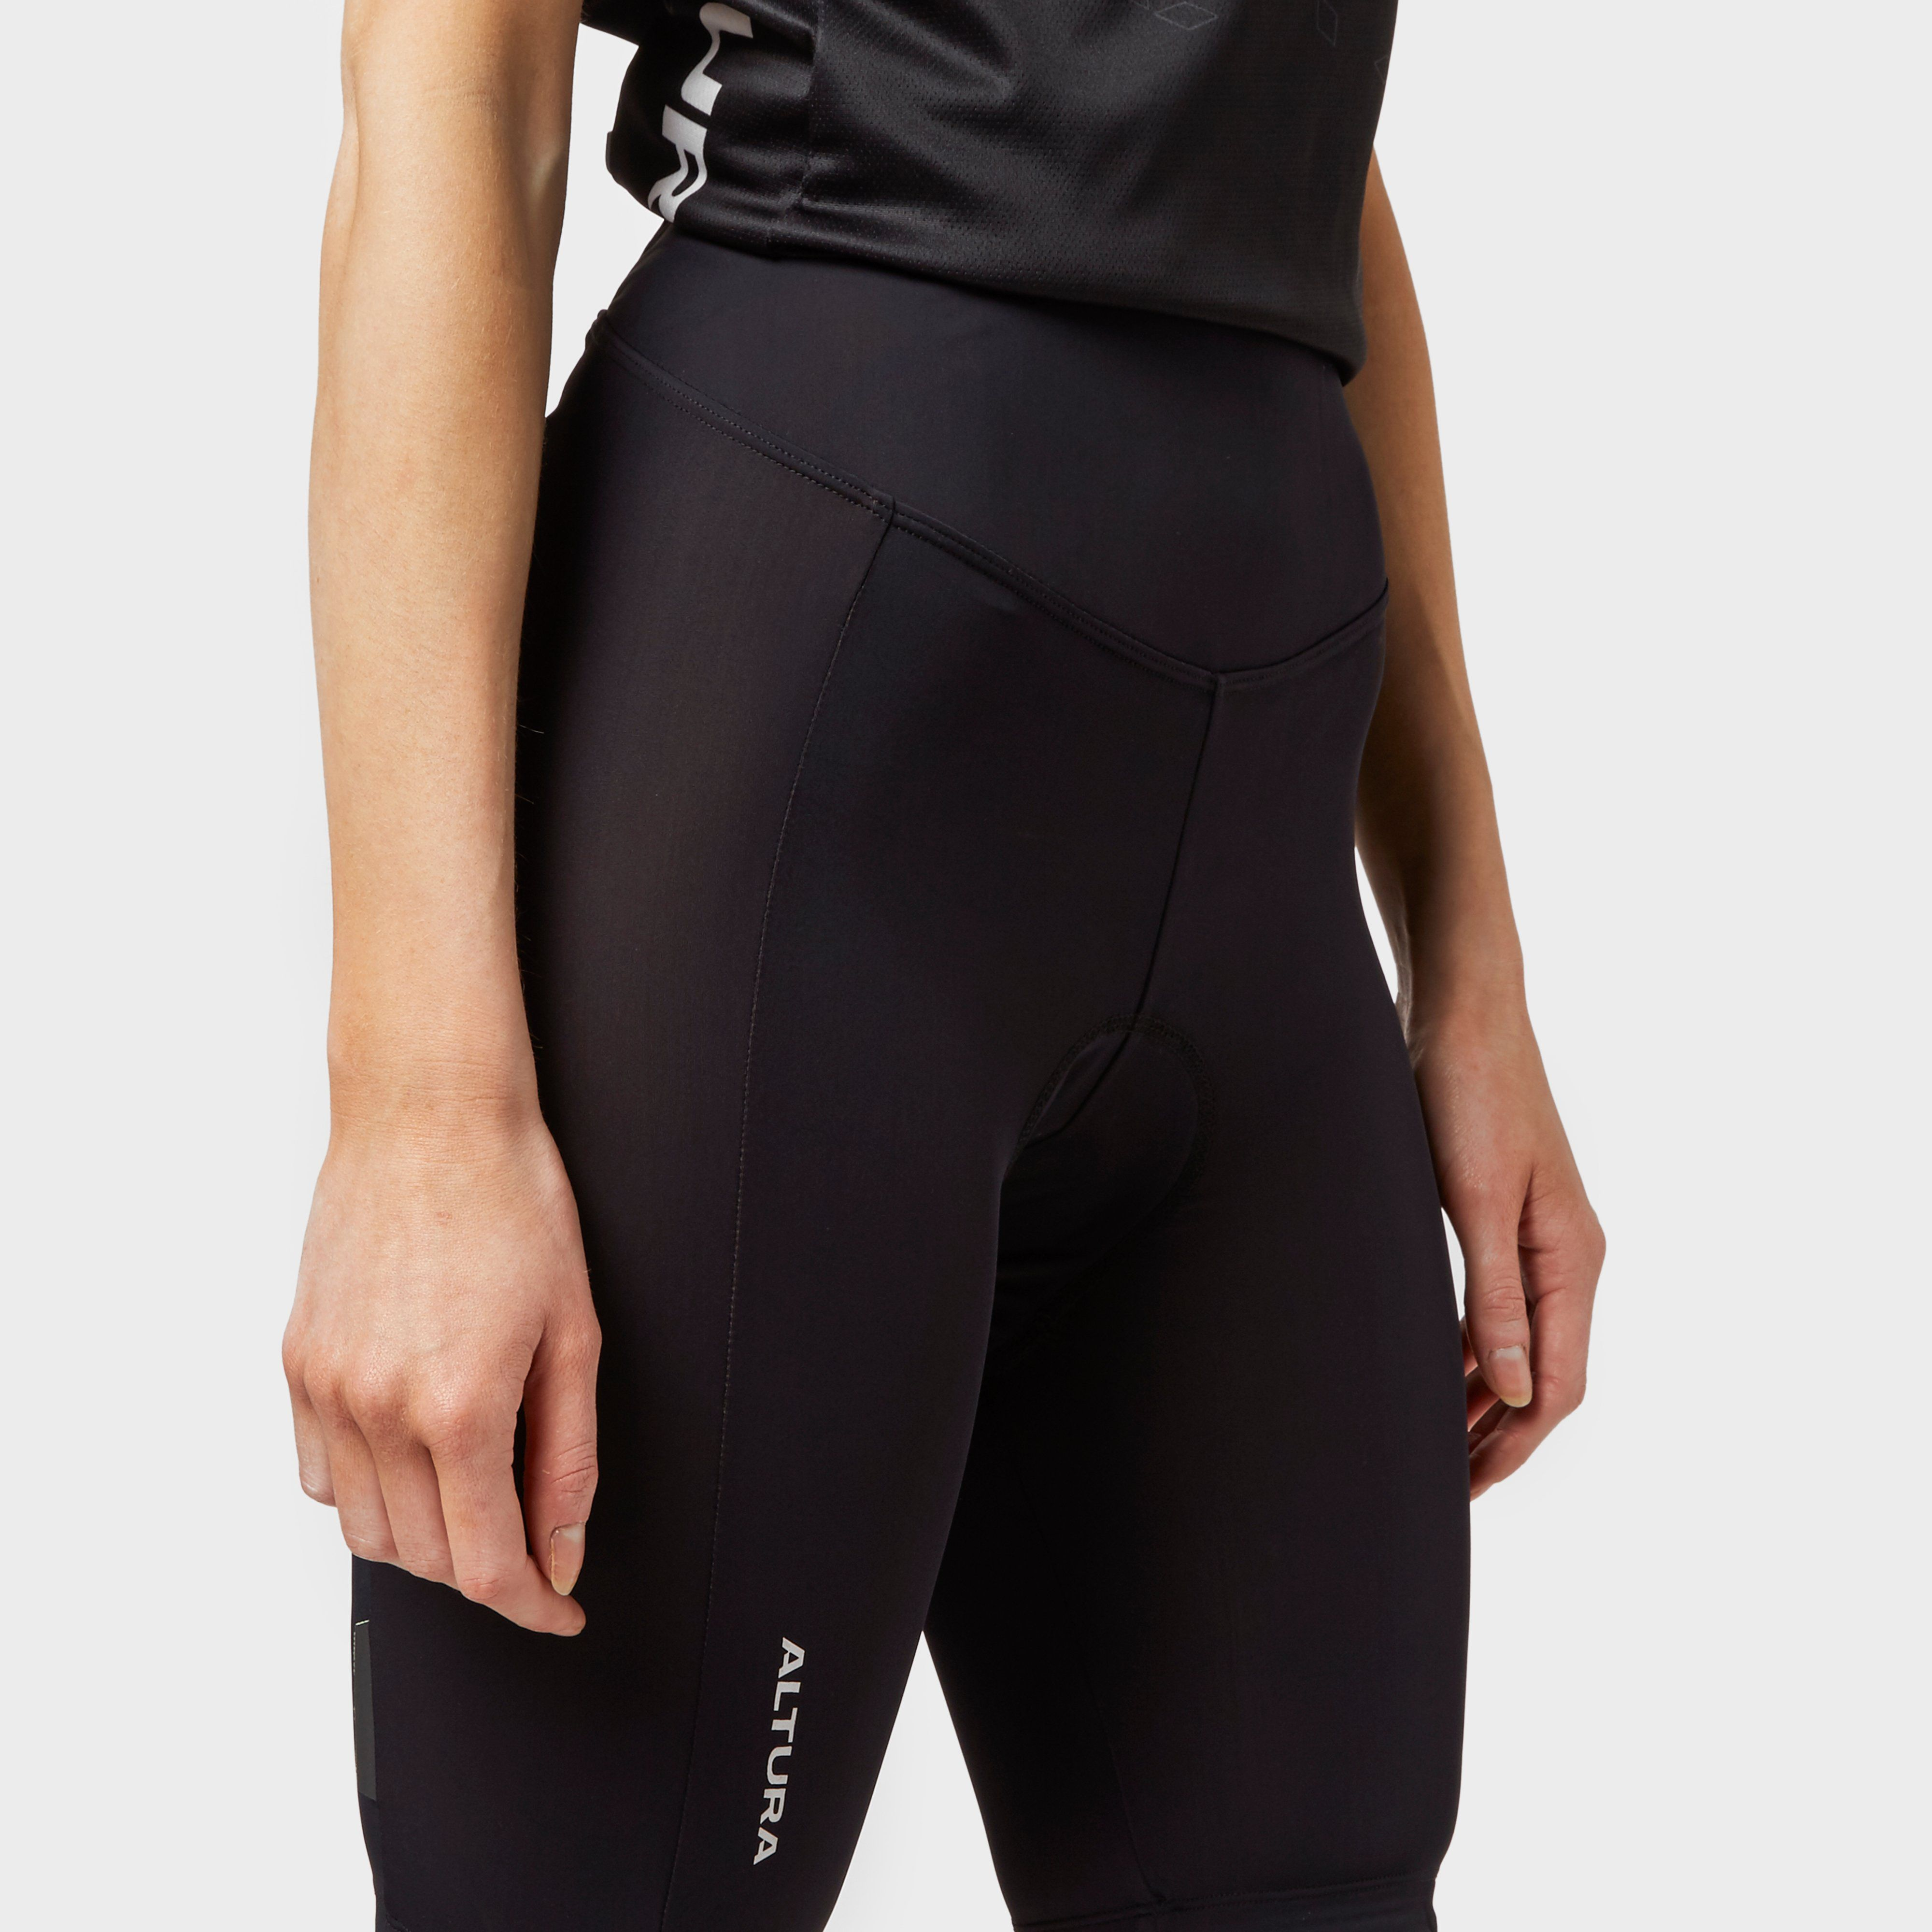 ALTURA Women's Airstream Cycling Shorts